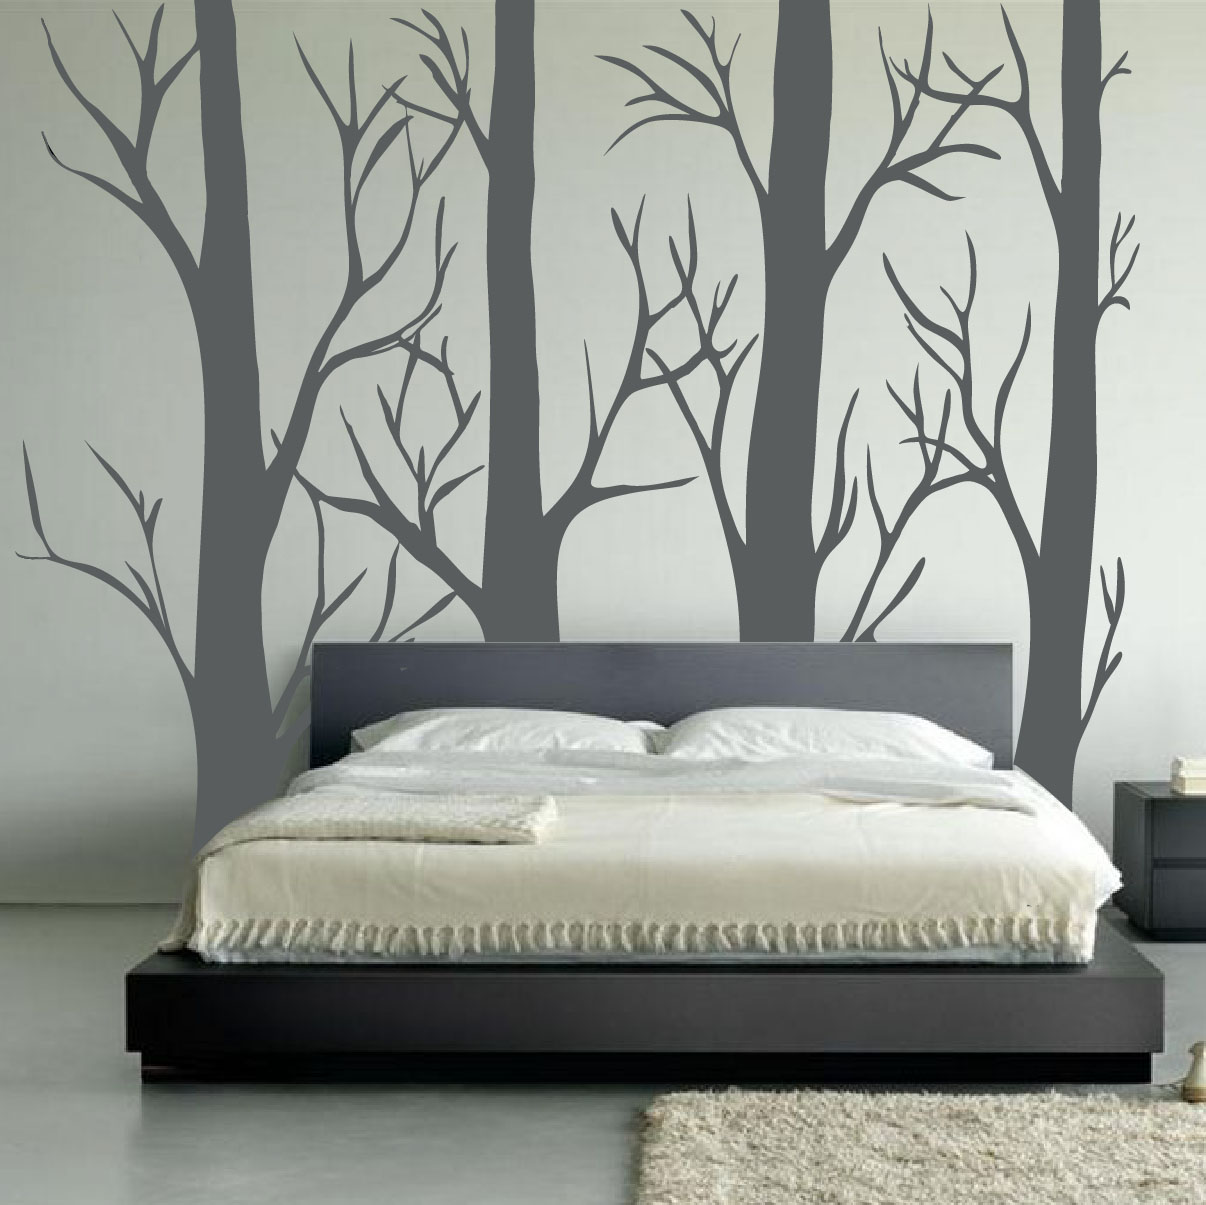 large-tree-wall-decal.jpg